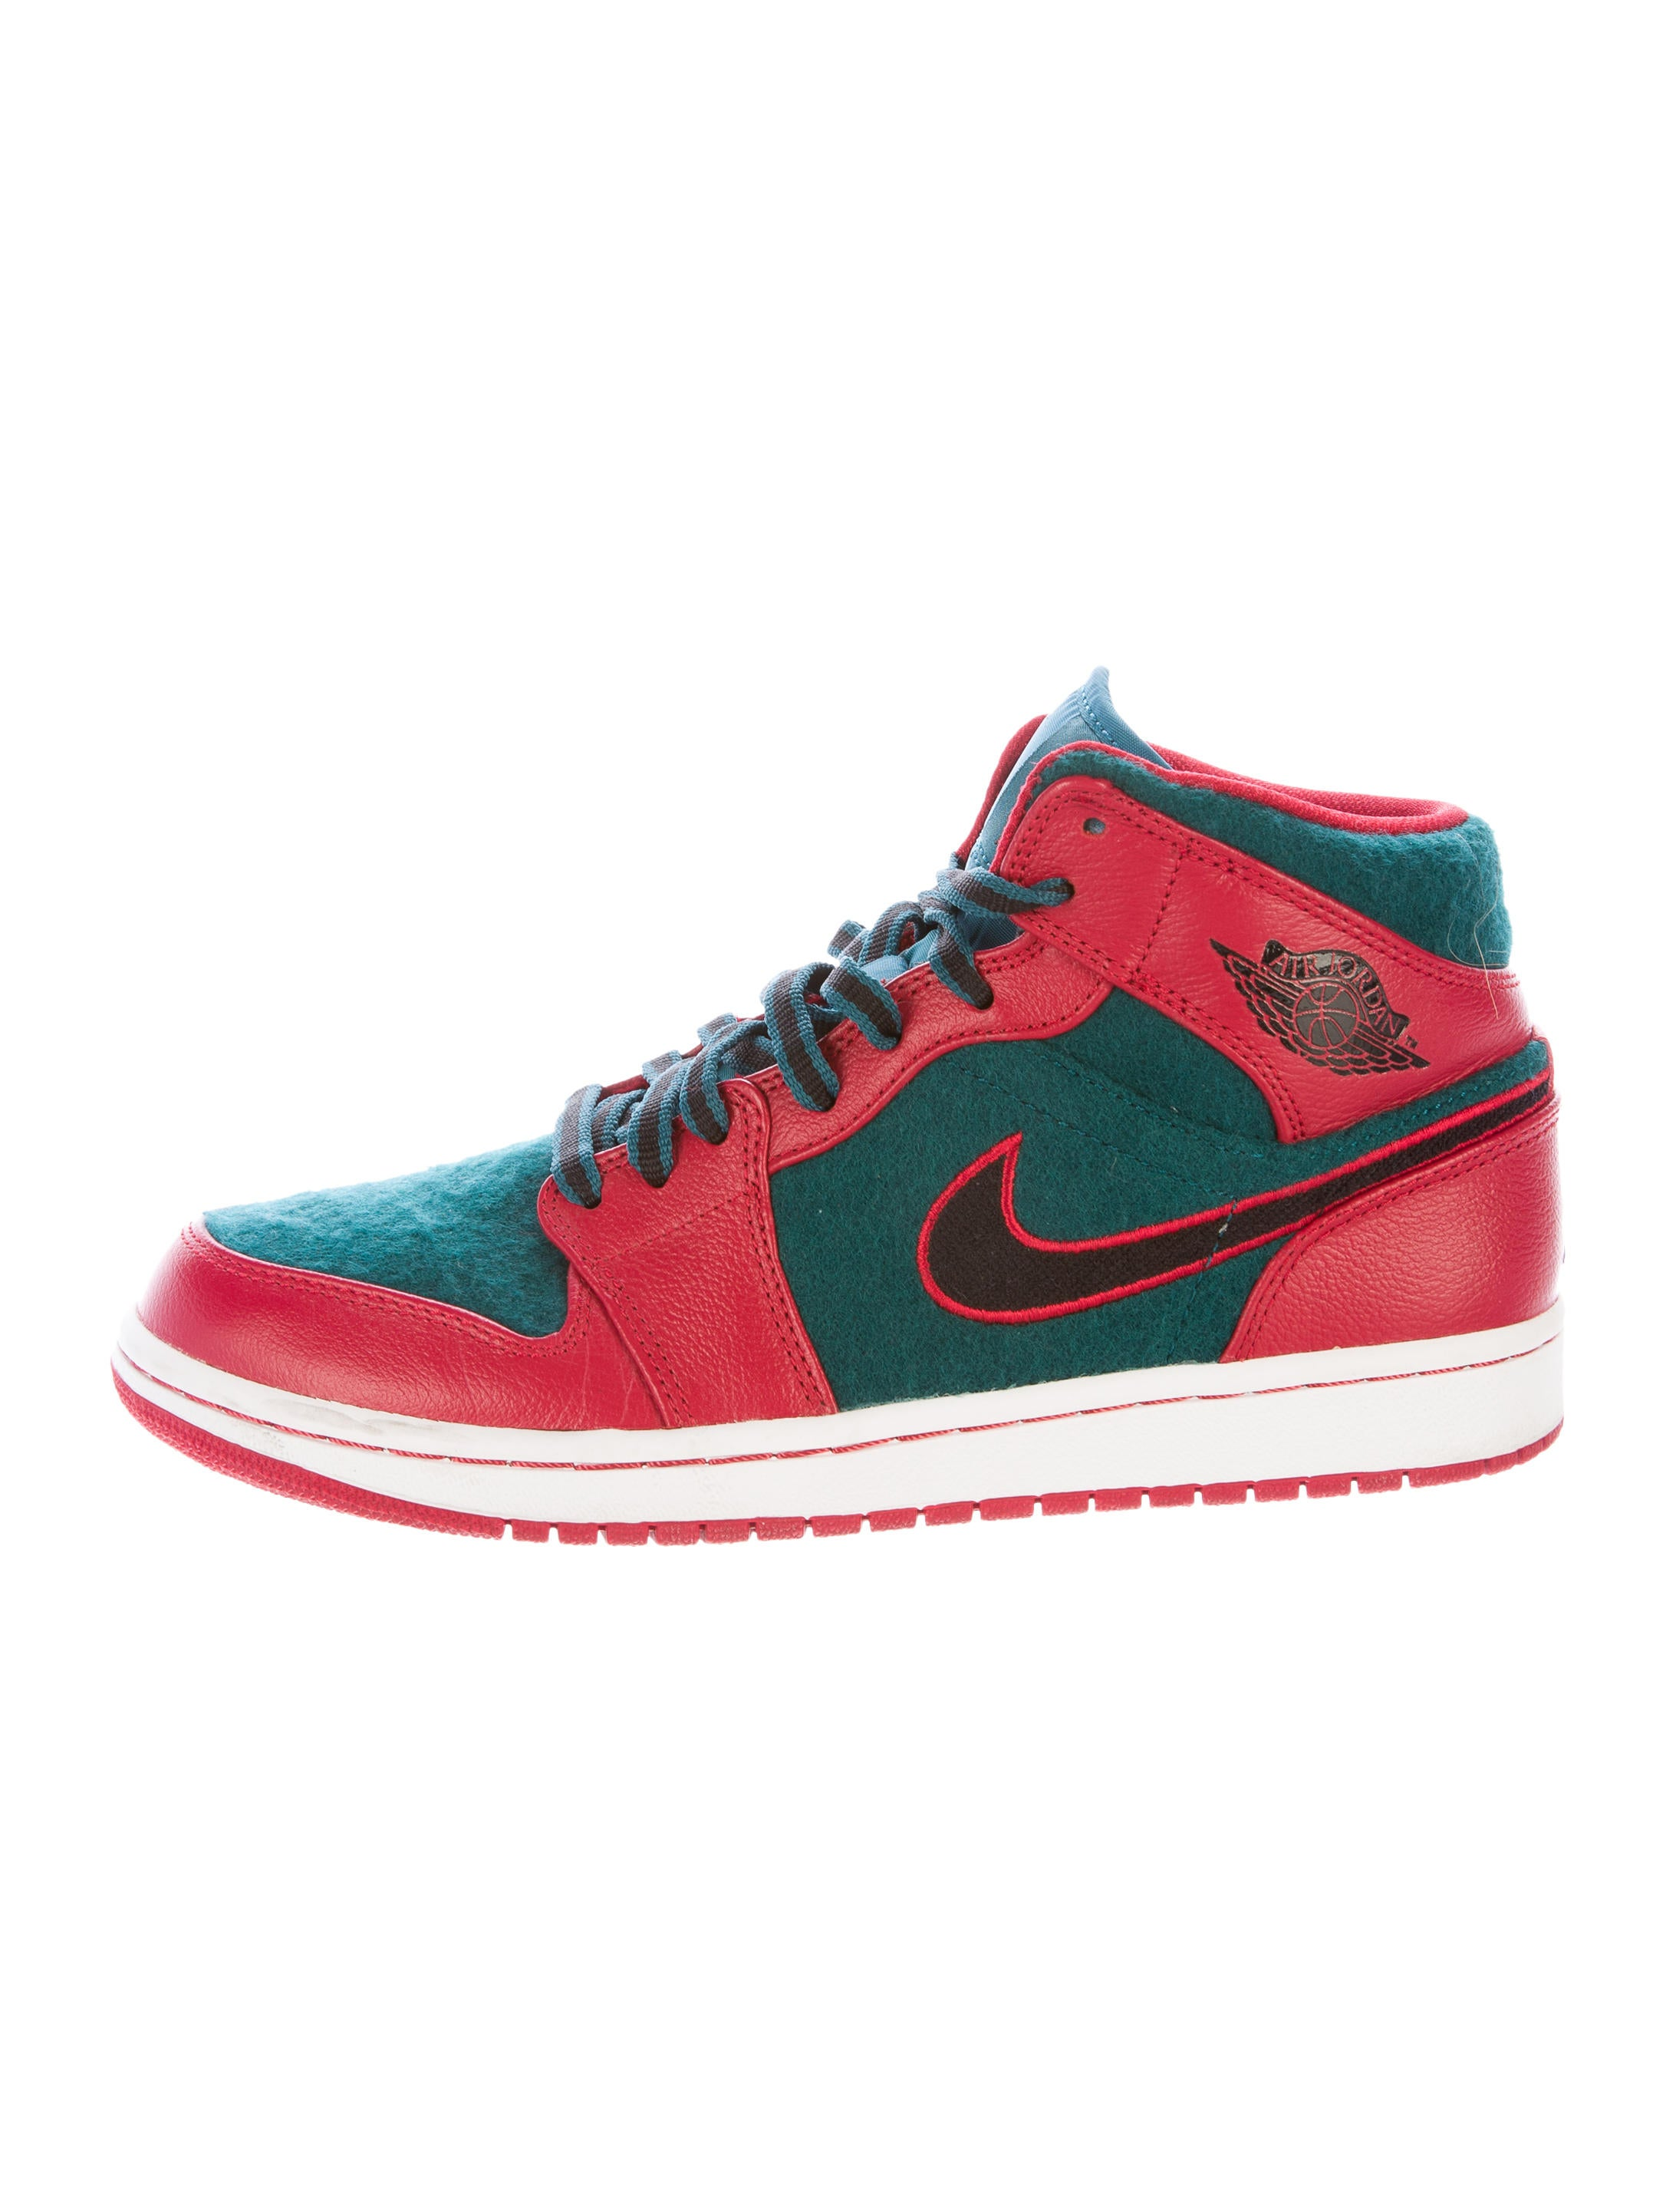 Mid Top Nike Shoes